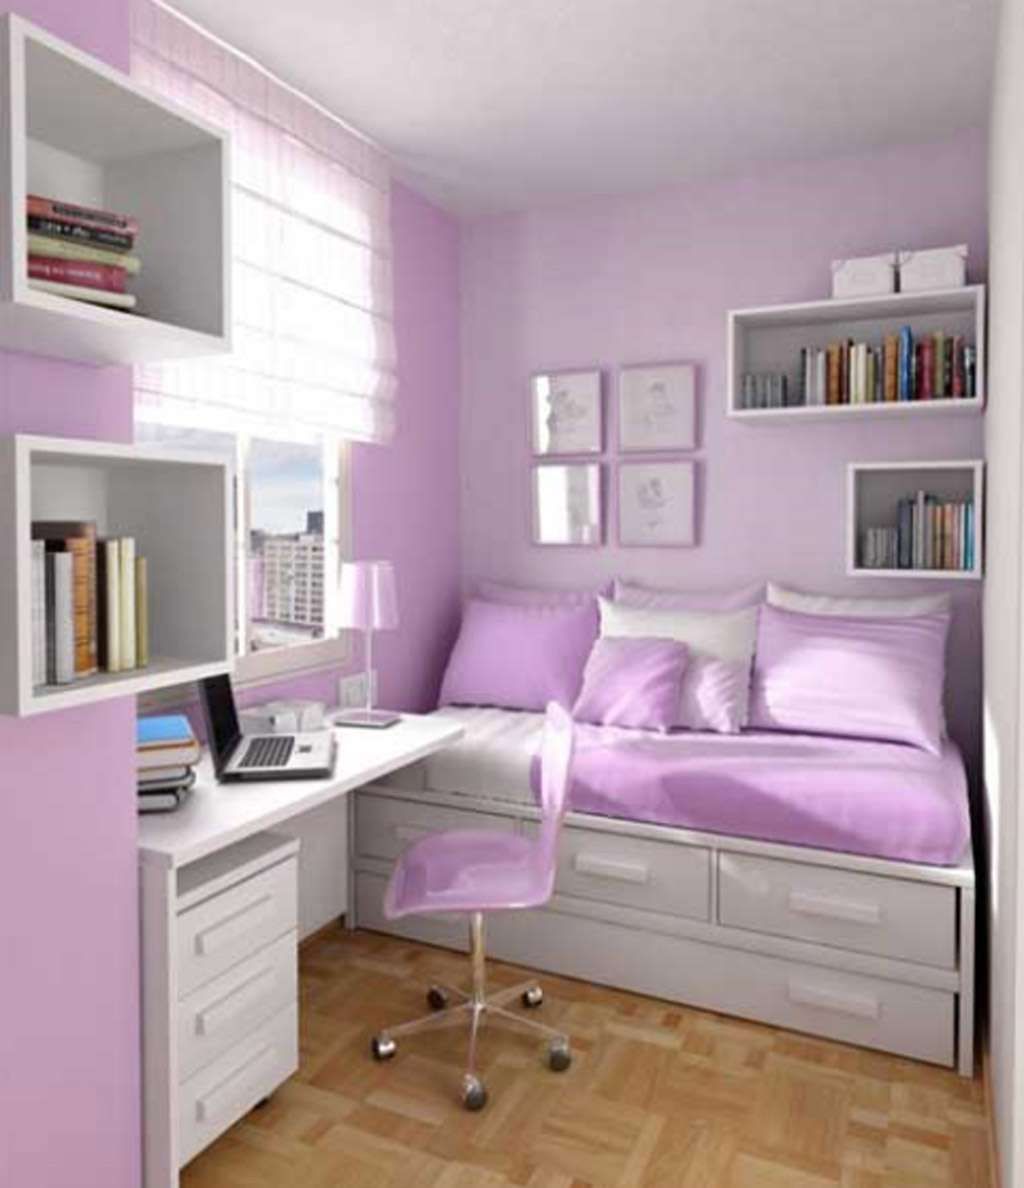 Bedroom colors light purple - Amazing Bedrooms For Teenage Girls White And Light Purple Color For Girl S Bedroom